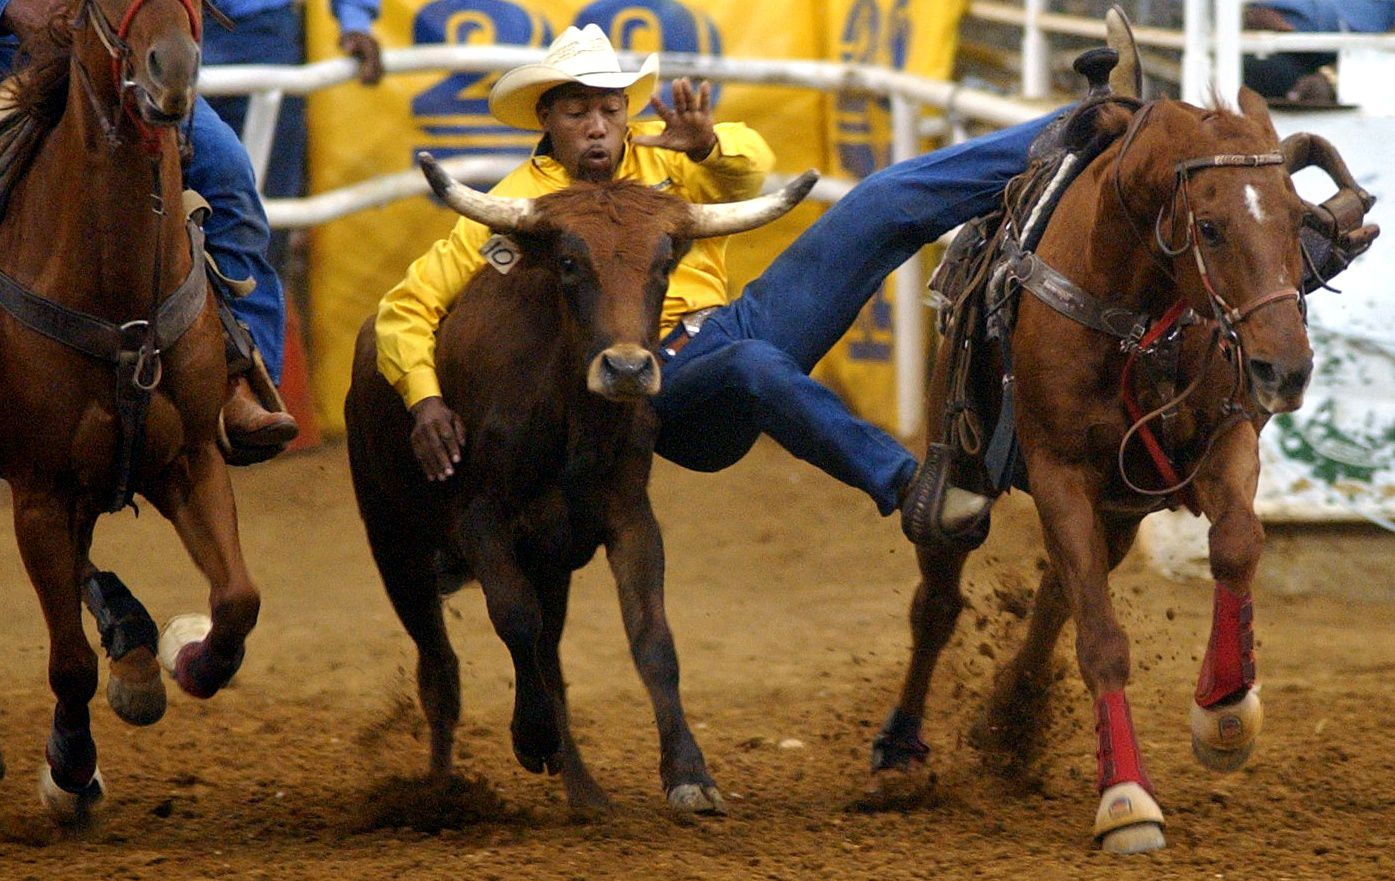 Steer wrestling will be one of the events the Texas Black Invitational Rodeo.